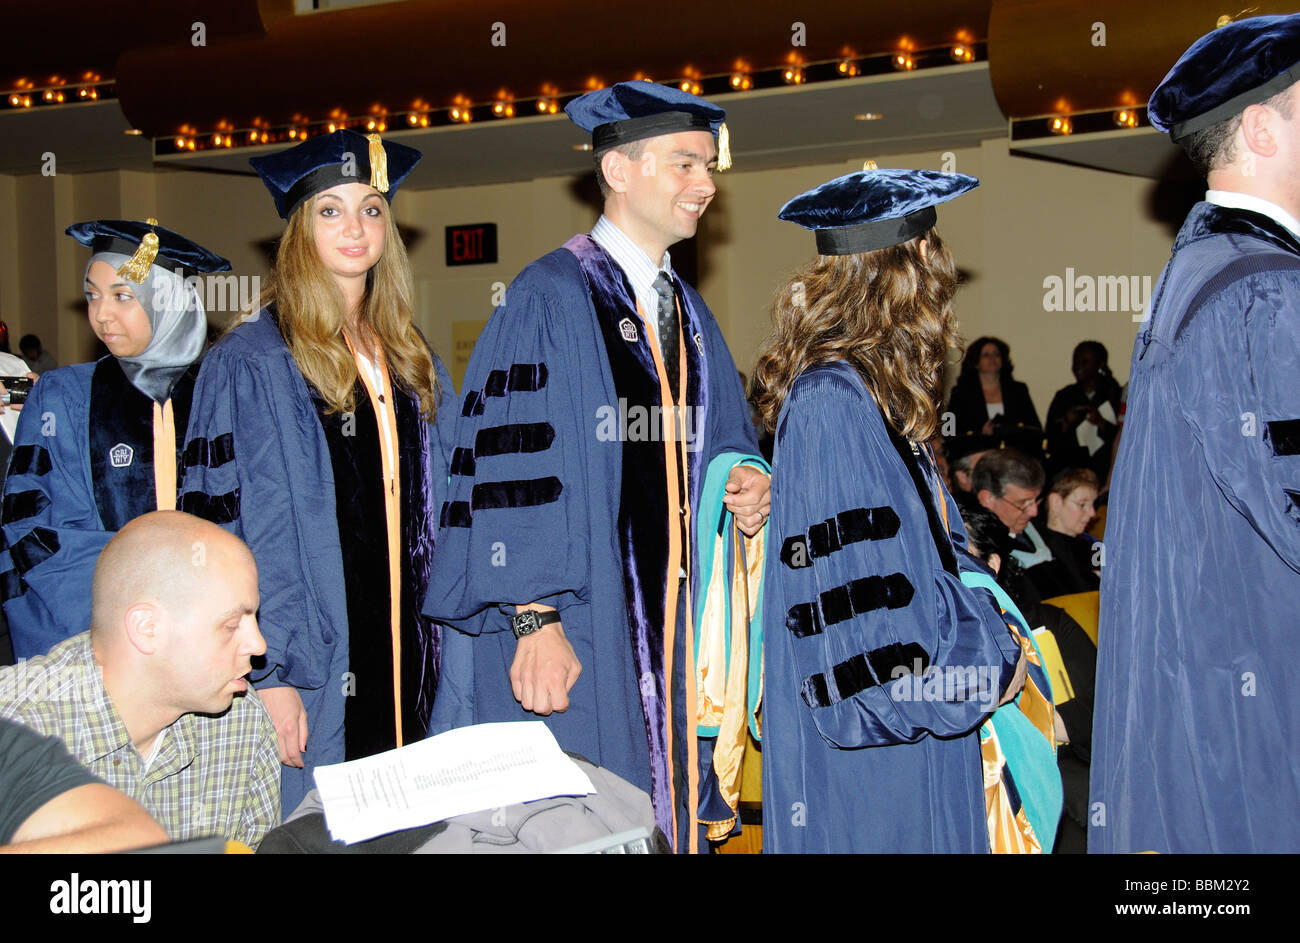 Graduation ceremony doctoral graduates wearing cap and gown in ...